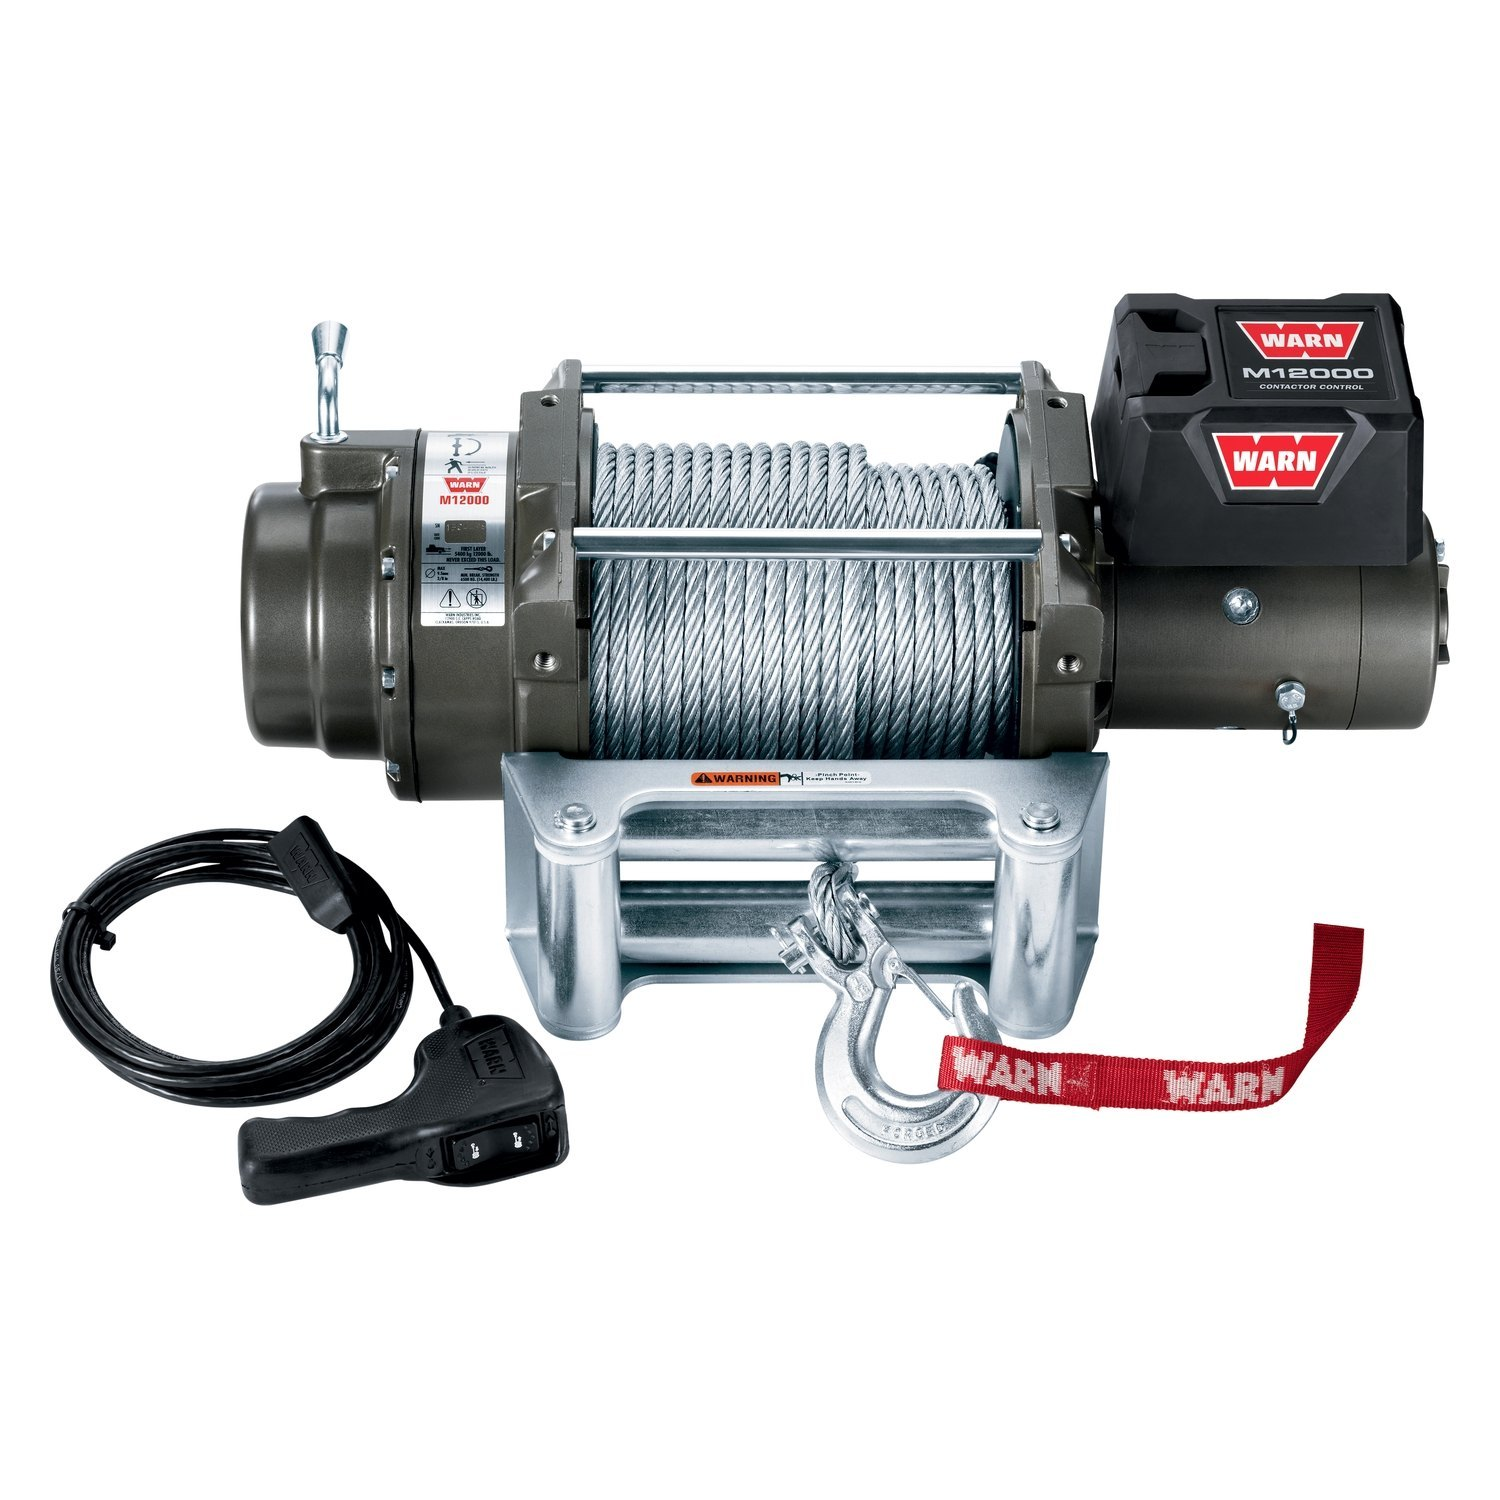 WARN 17801 12,000 lbs M Series Self-Recovery Electric Winch w Wire ...